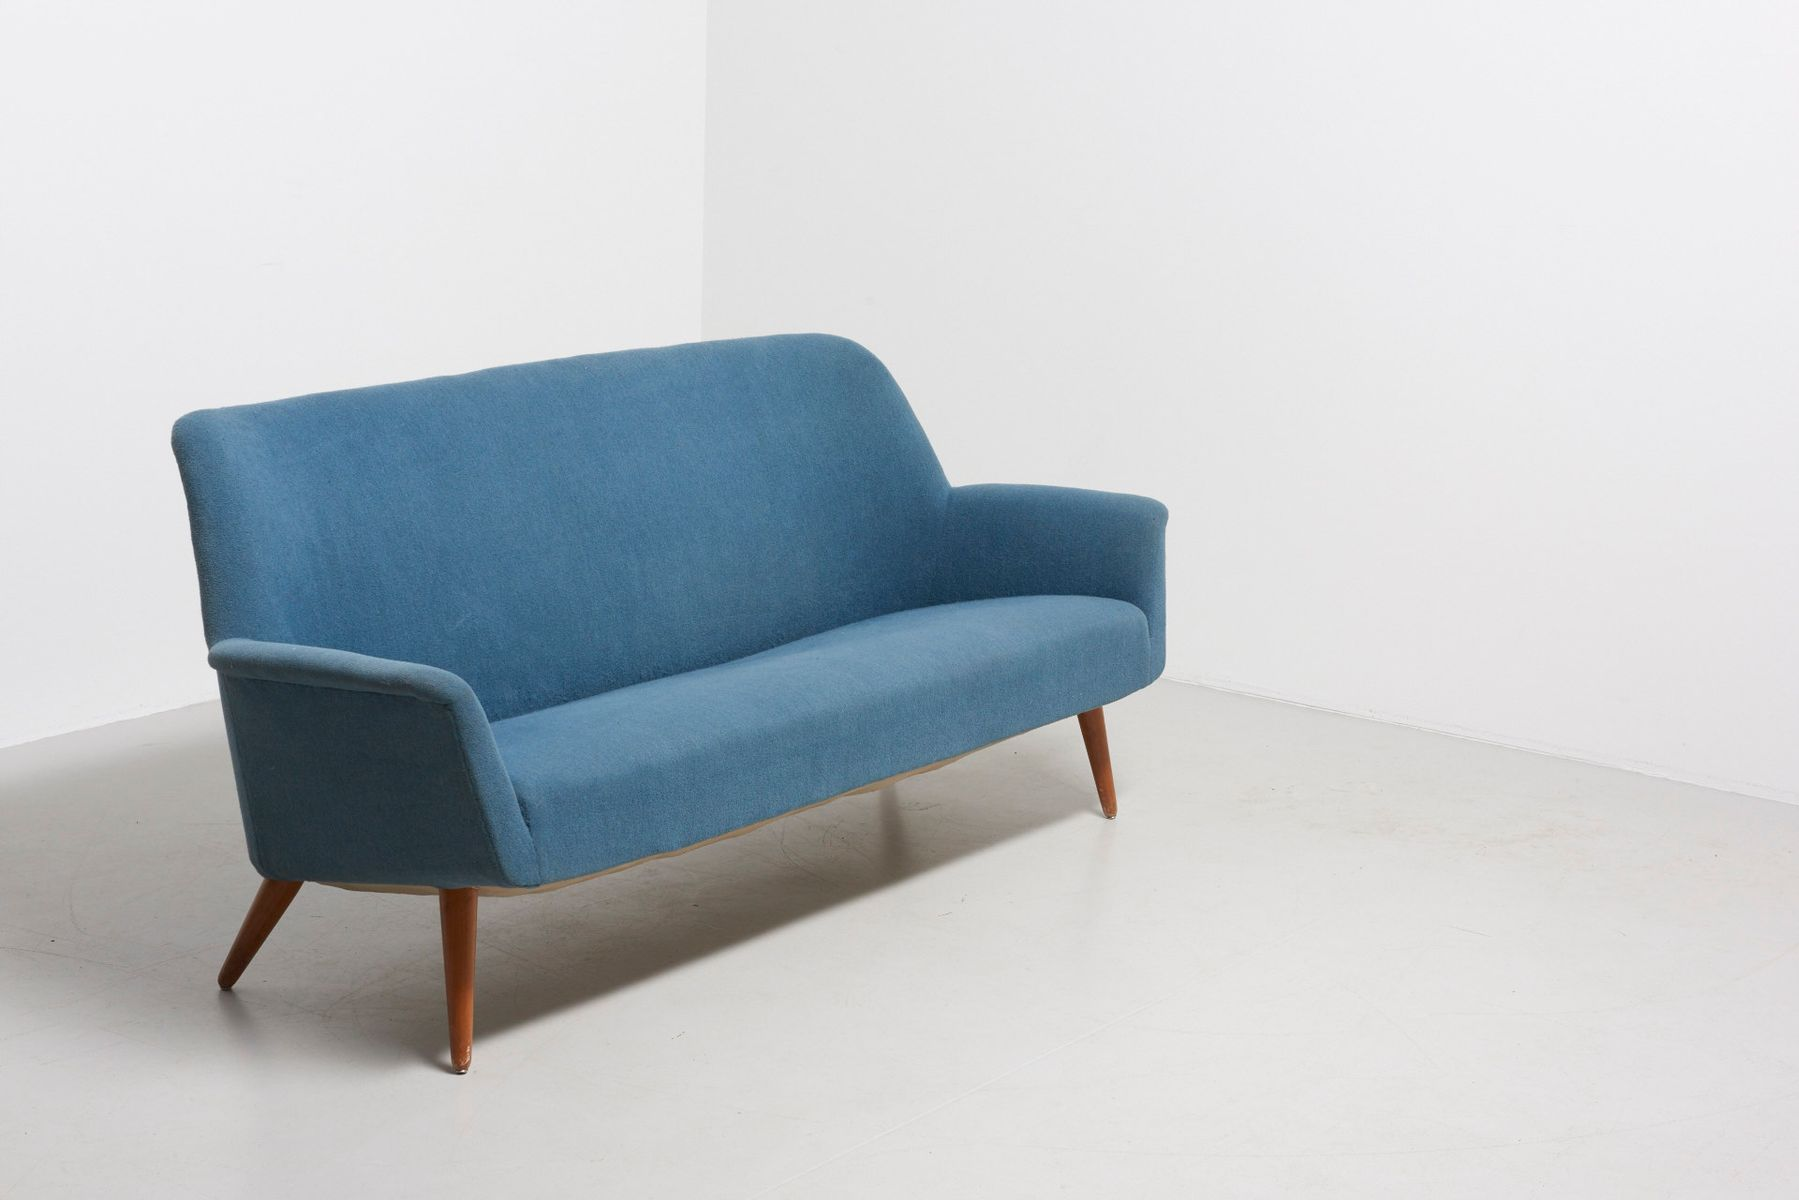 Mid Century 2 Seater Sofa With Blue Fabric And Teak Legs